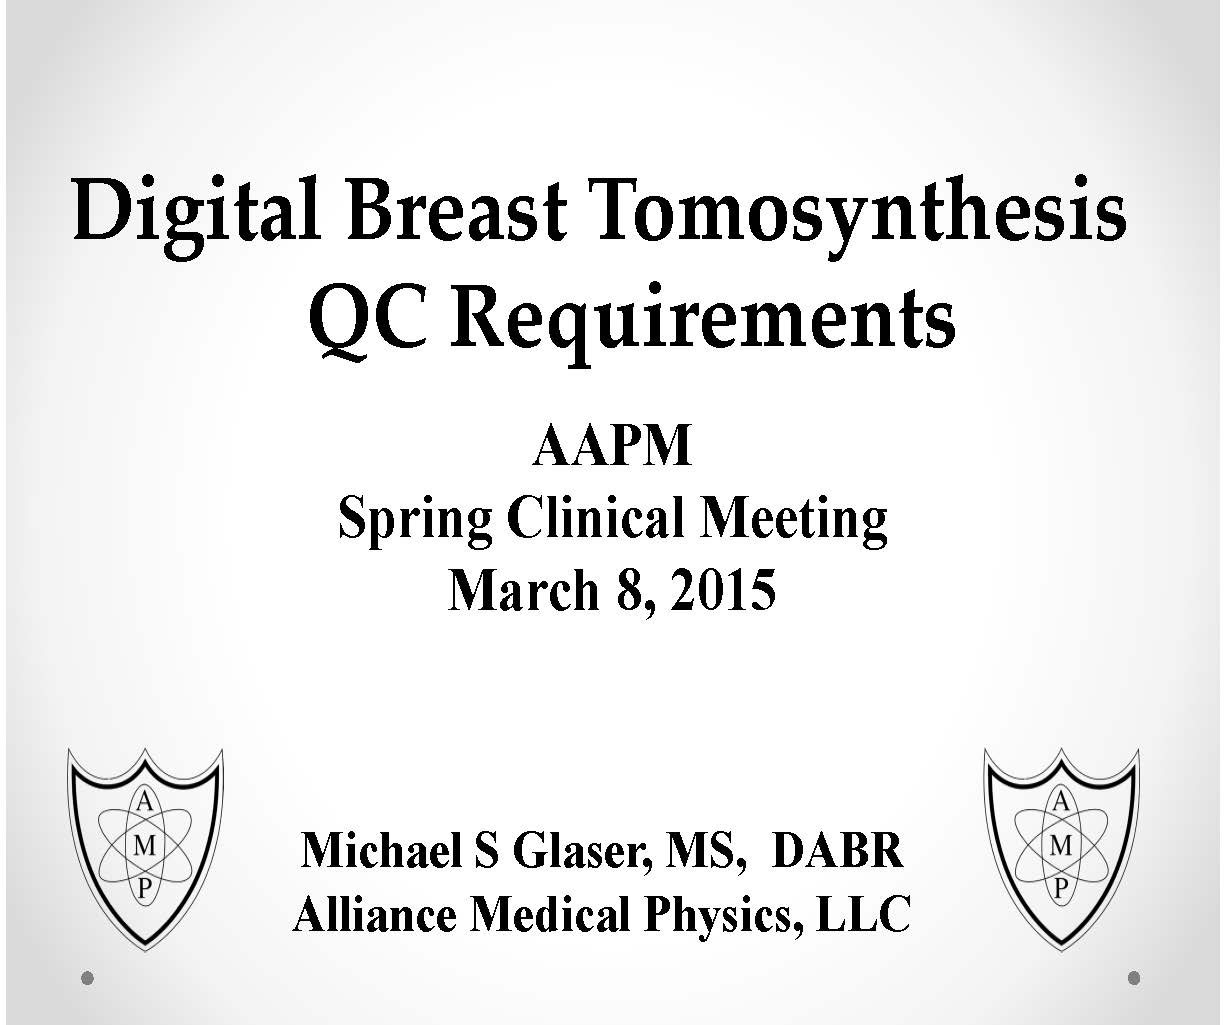 ge healthcare digital breast tomosynthesis • senoclaire system (ge healthcare: cleared august 26, 2014)  comparative cohort studies comparing digital breast tomosynthesis alone for screening, diagnosis.